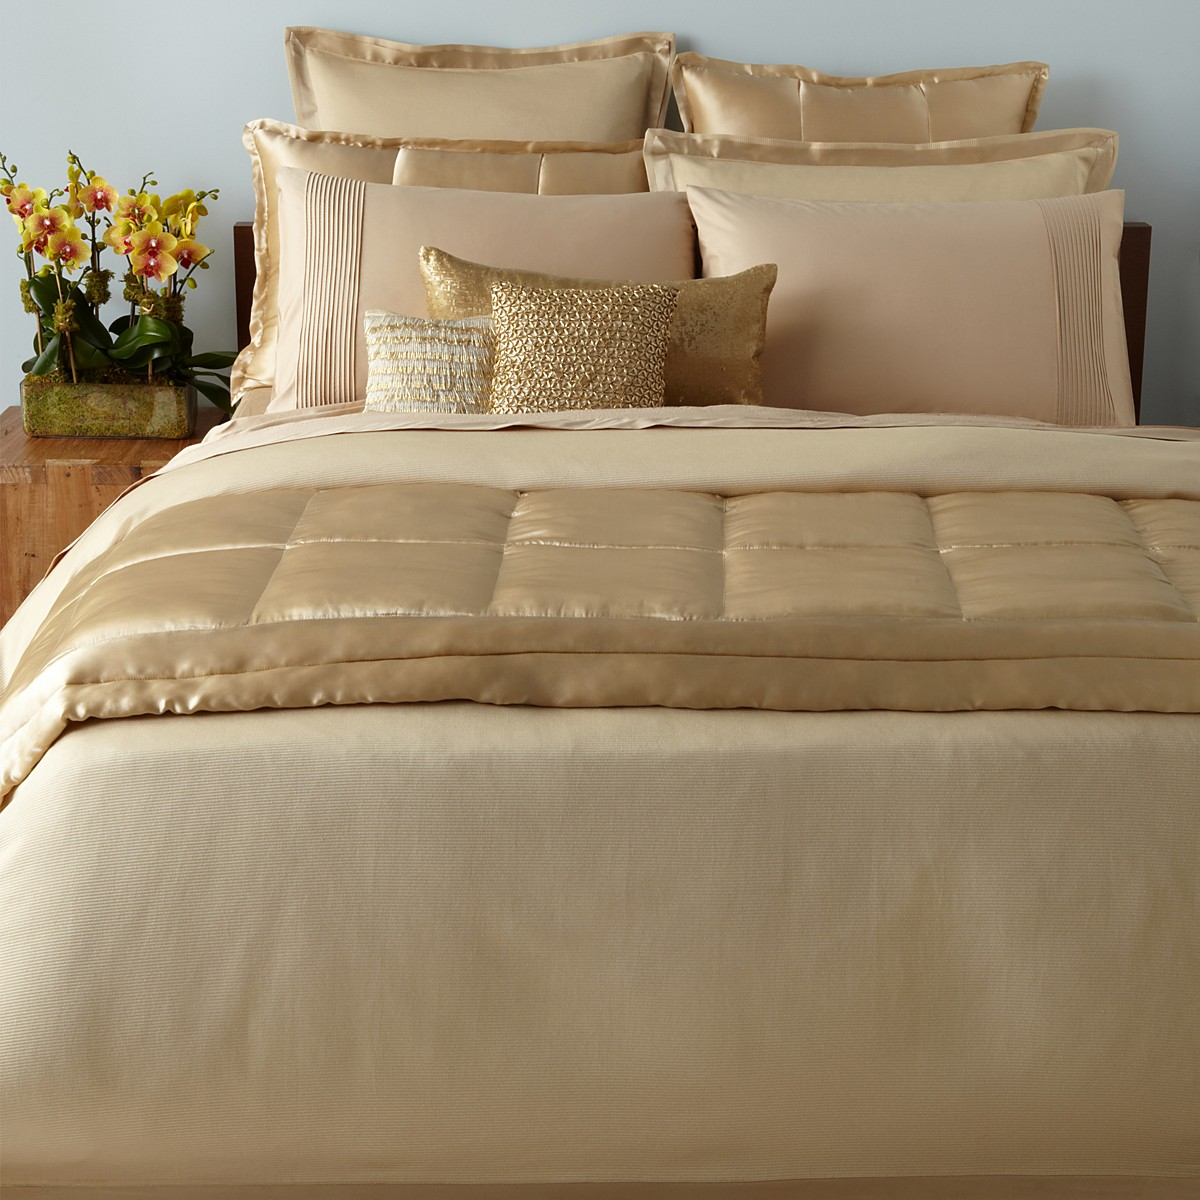 Brilliant donna karan bedding with Cushion and pillows also beautiful duvet cover and sidetable and luxury wall paint color